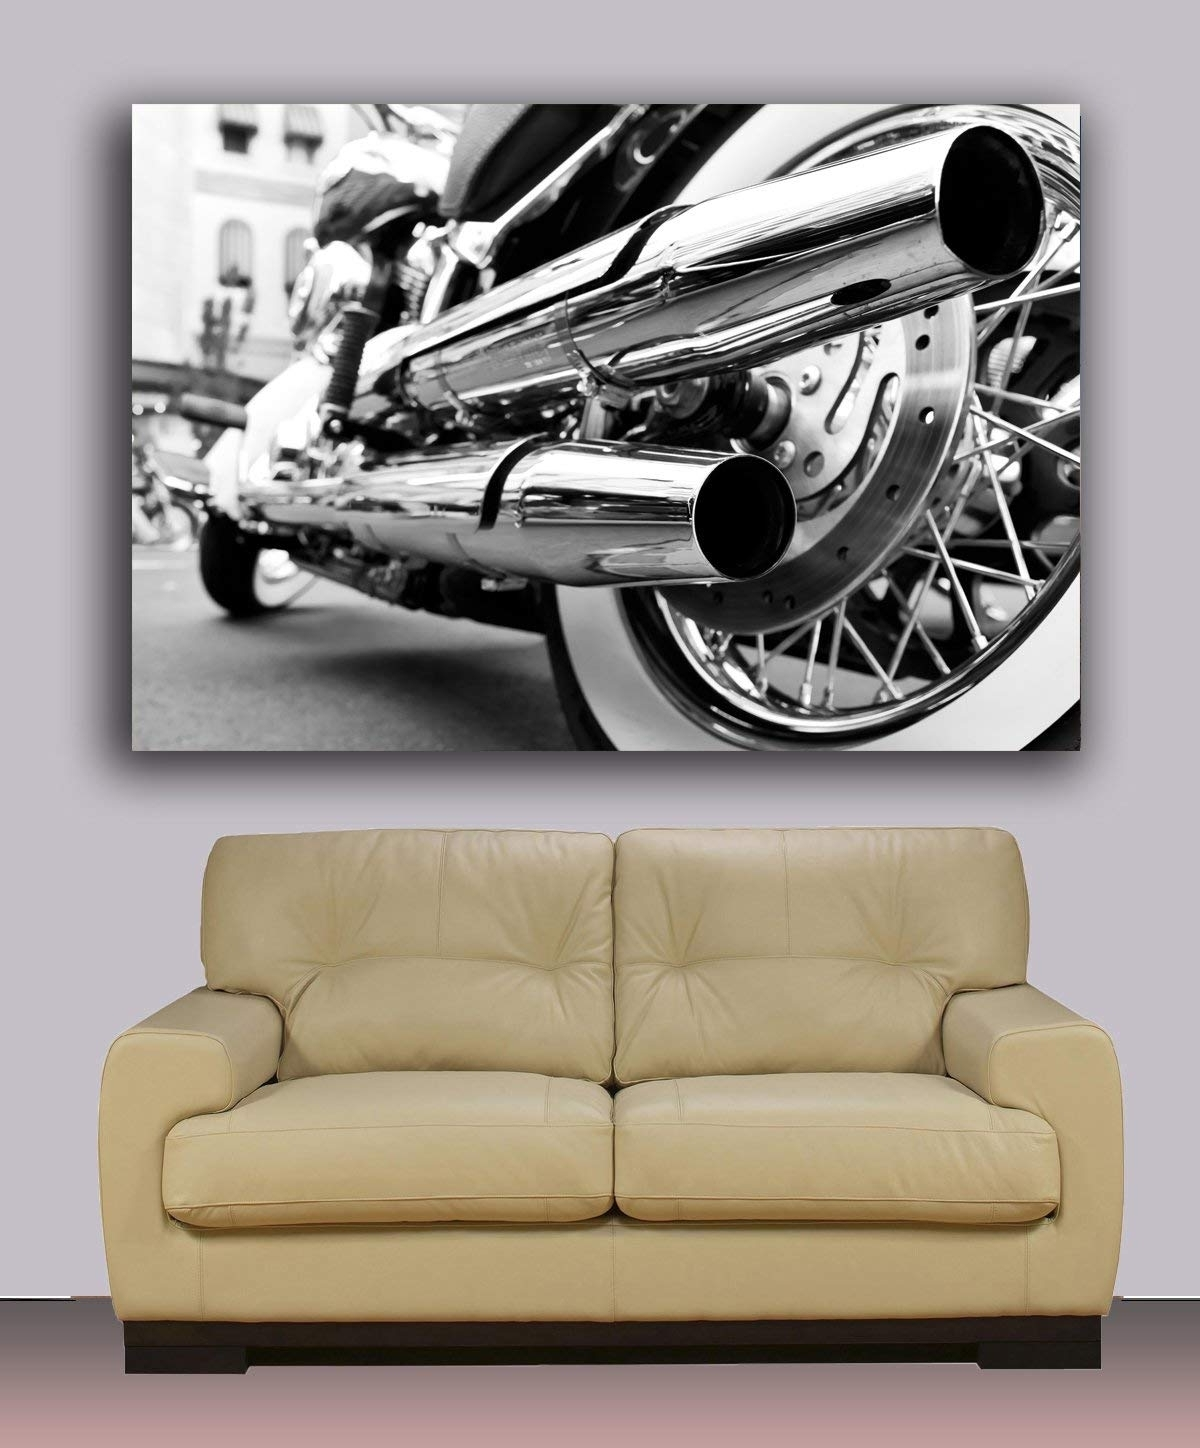 Amazon: Harley Davidson Canvas Print, Ready To Hang Wall Art Regarding 2018 Harley Davidson Wall Art (View 3 of 20)